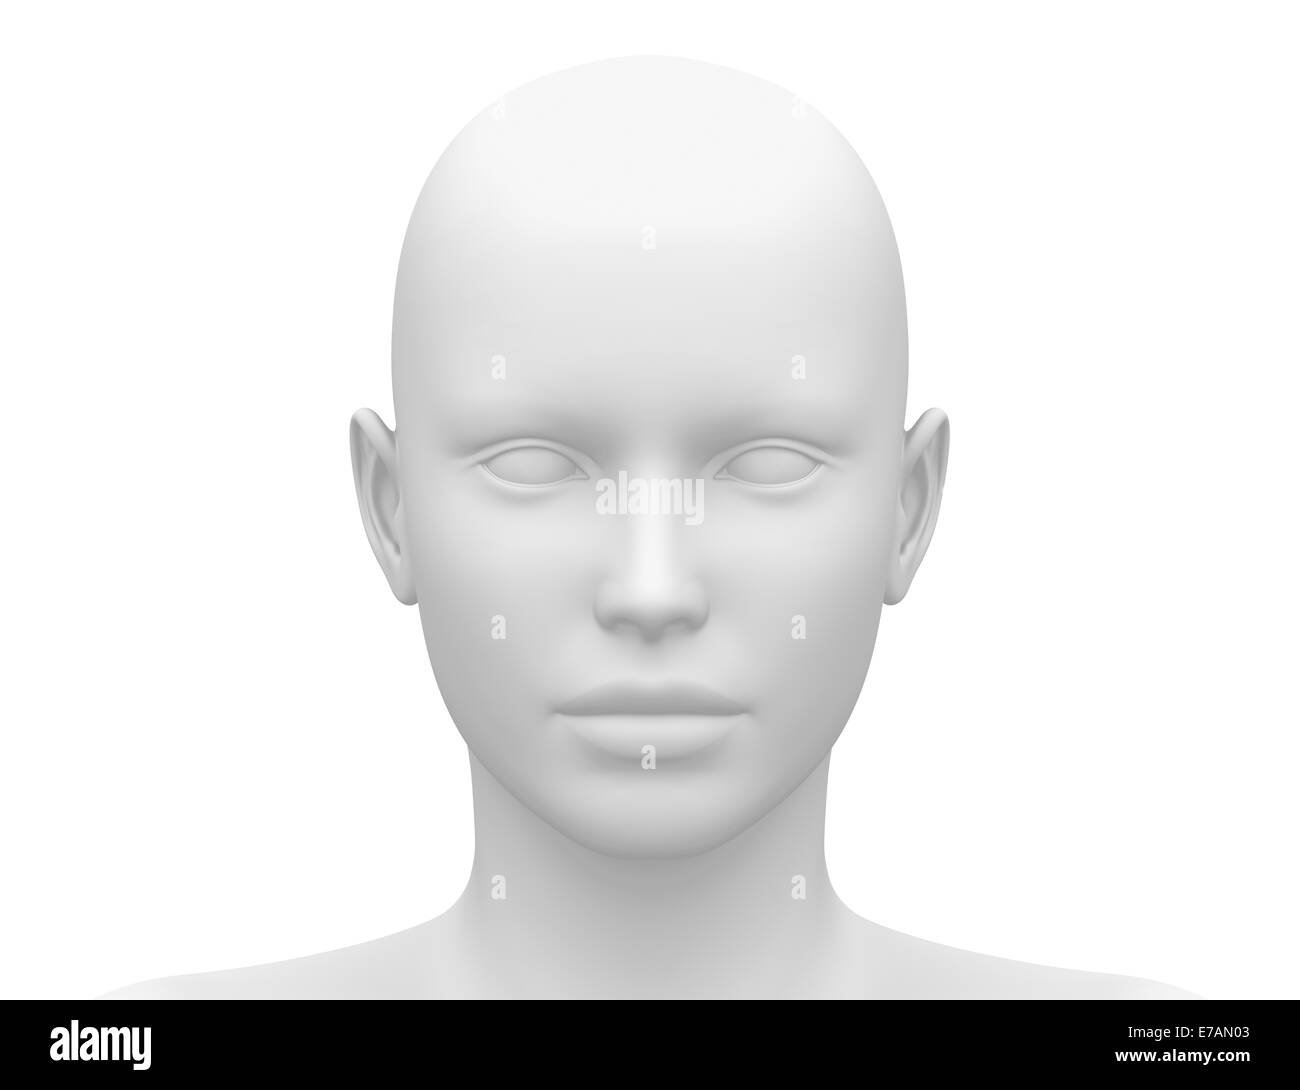 Female Head Muscles Anatomy - Front view Stock Photo: 73380051 - Alamy